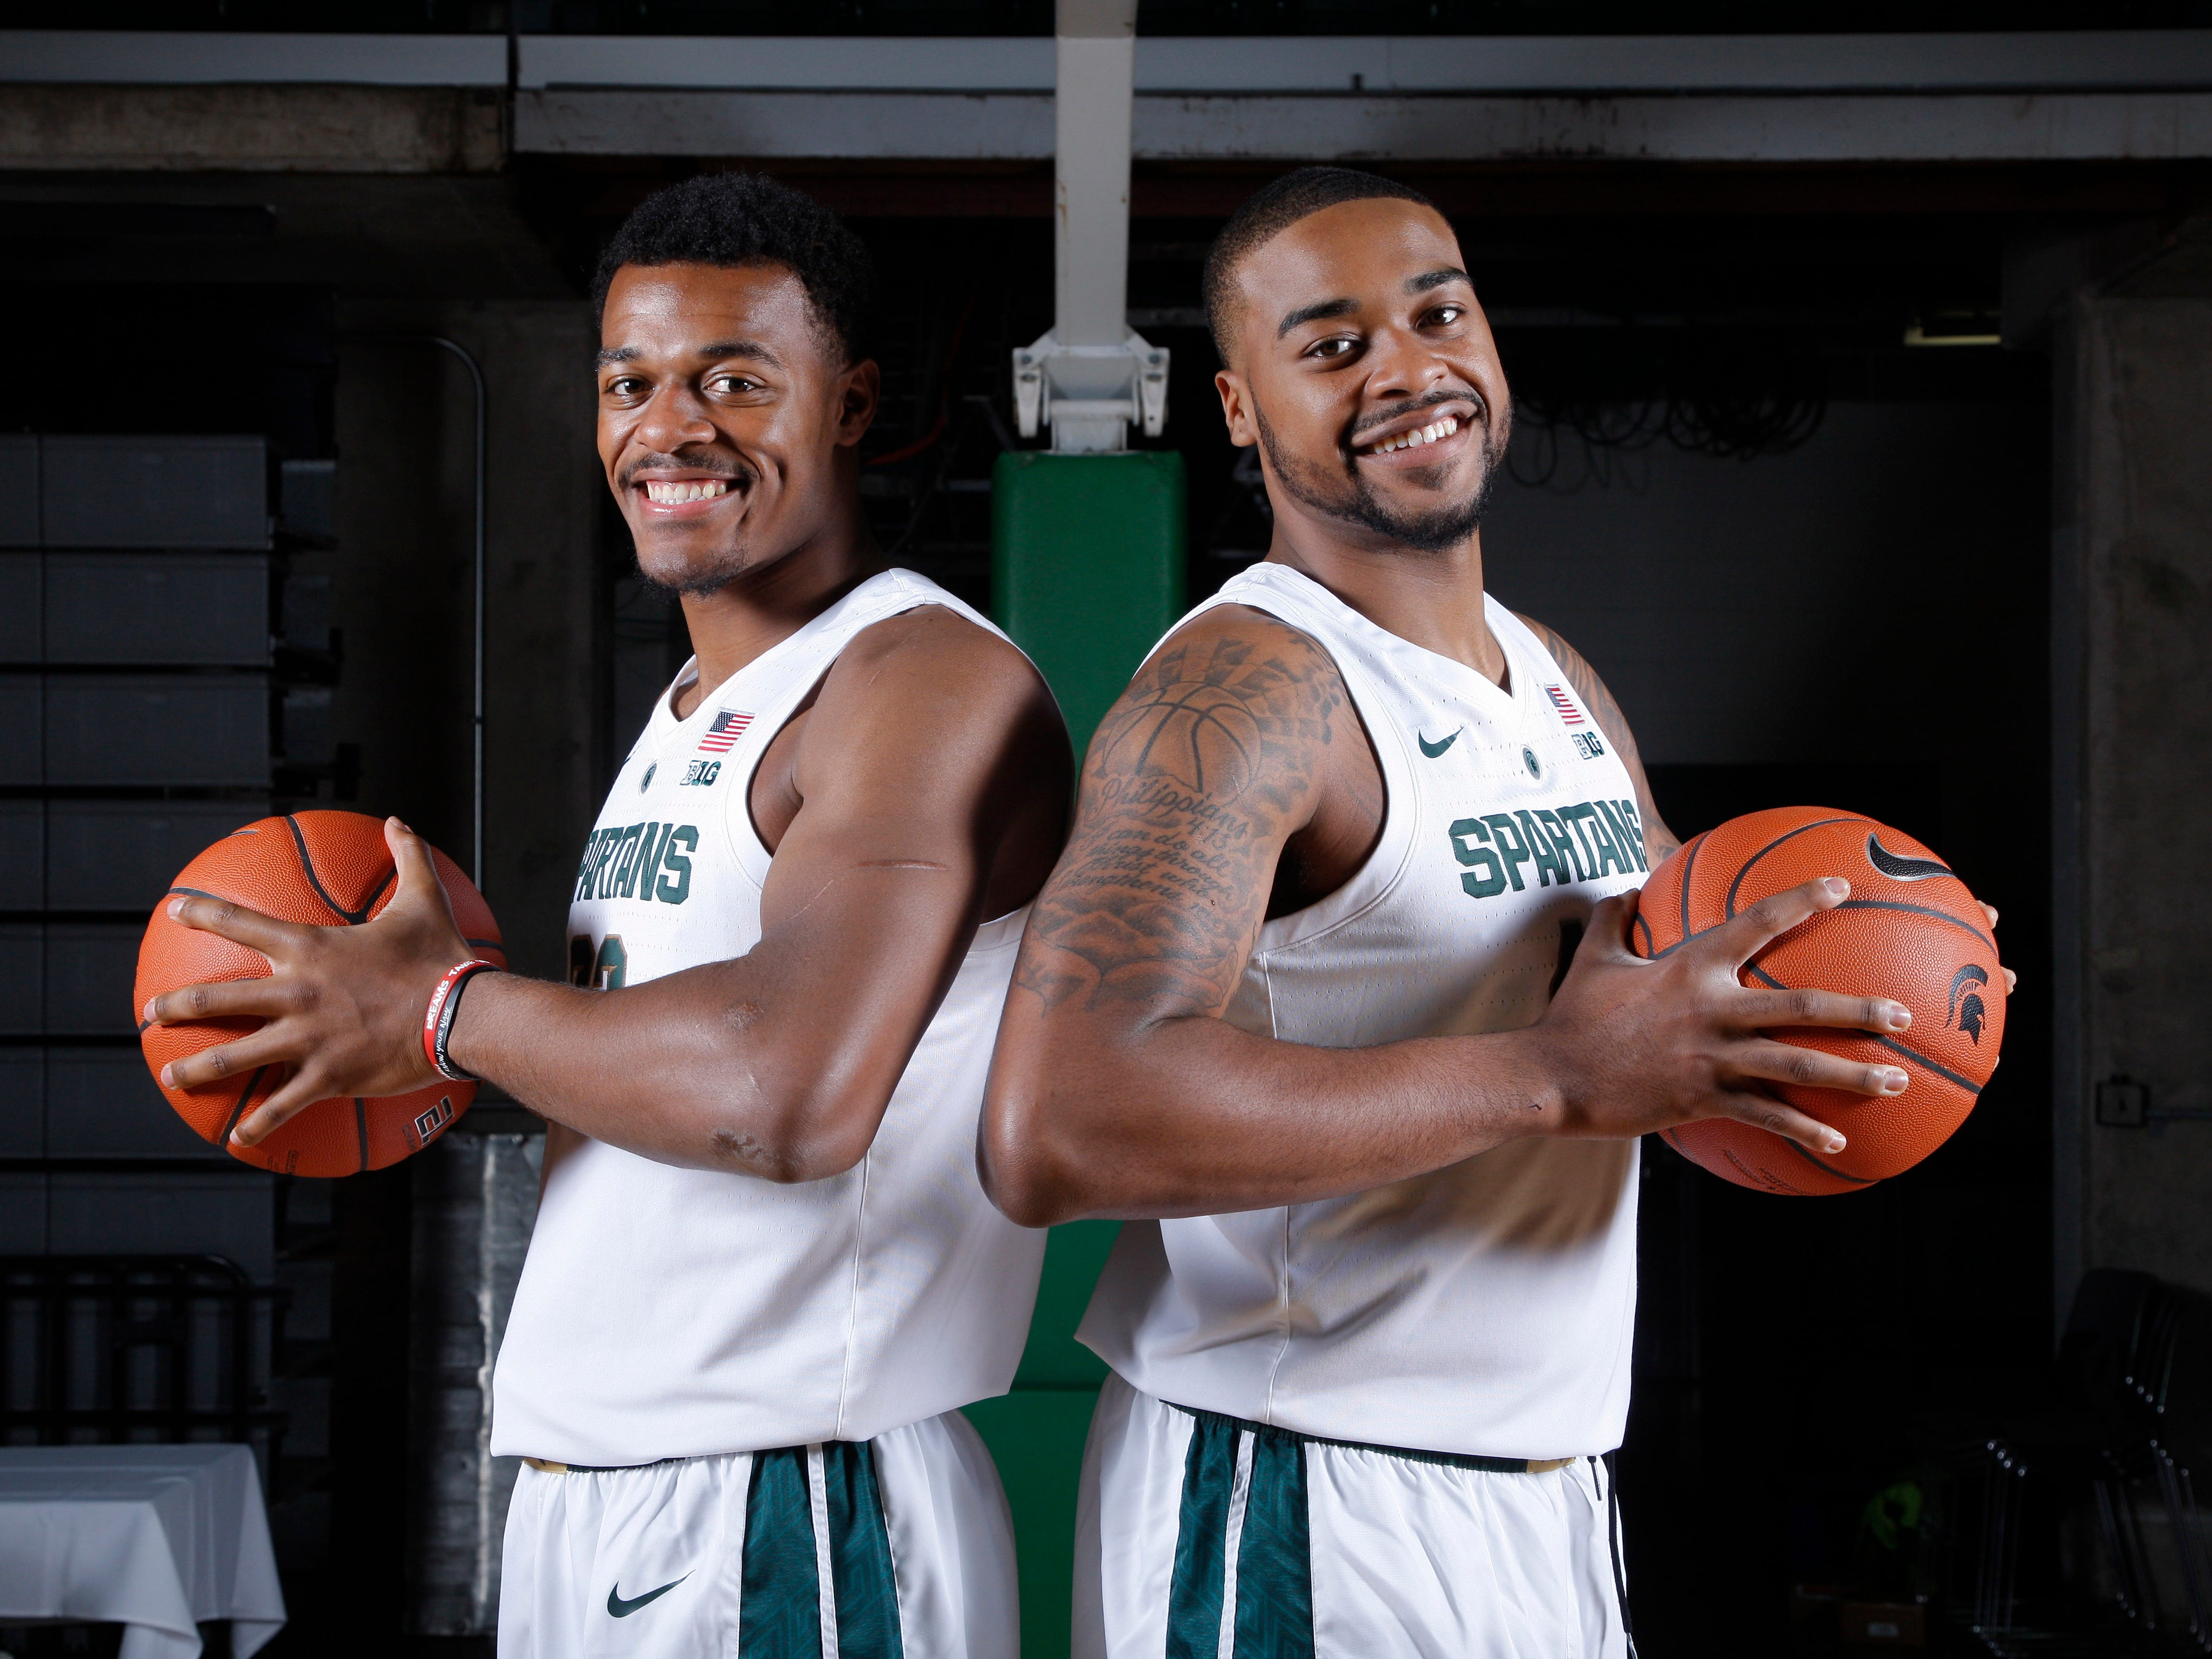 Michigan State's Xavier Tillman, left, and Nick Ward are shown during the team's media day, Thursday, Oct. 25, 2018, in East Lansing, Mich.